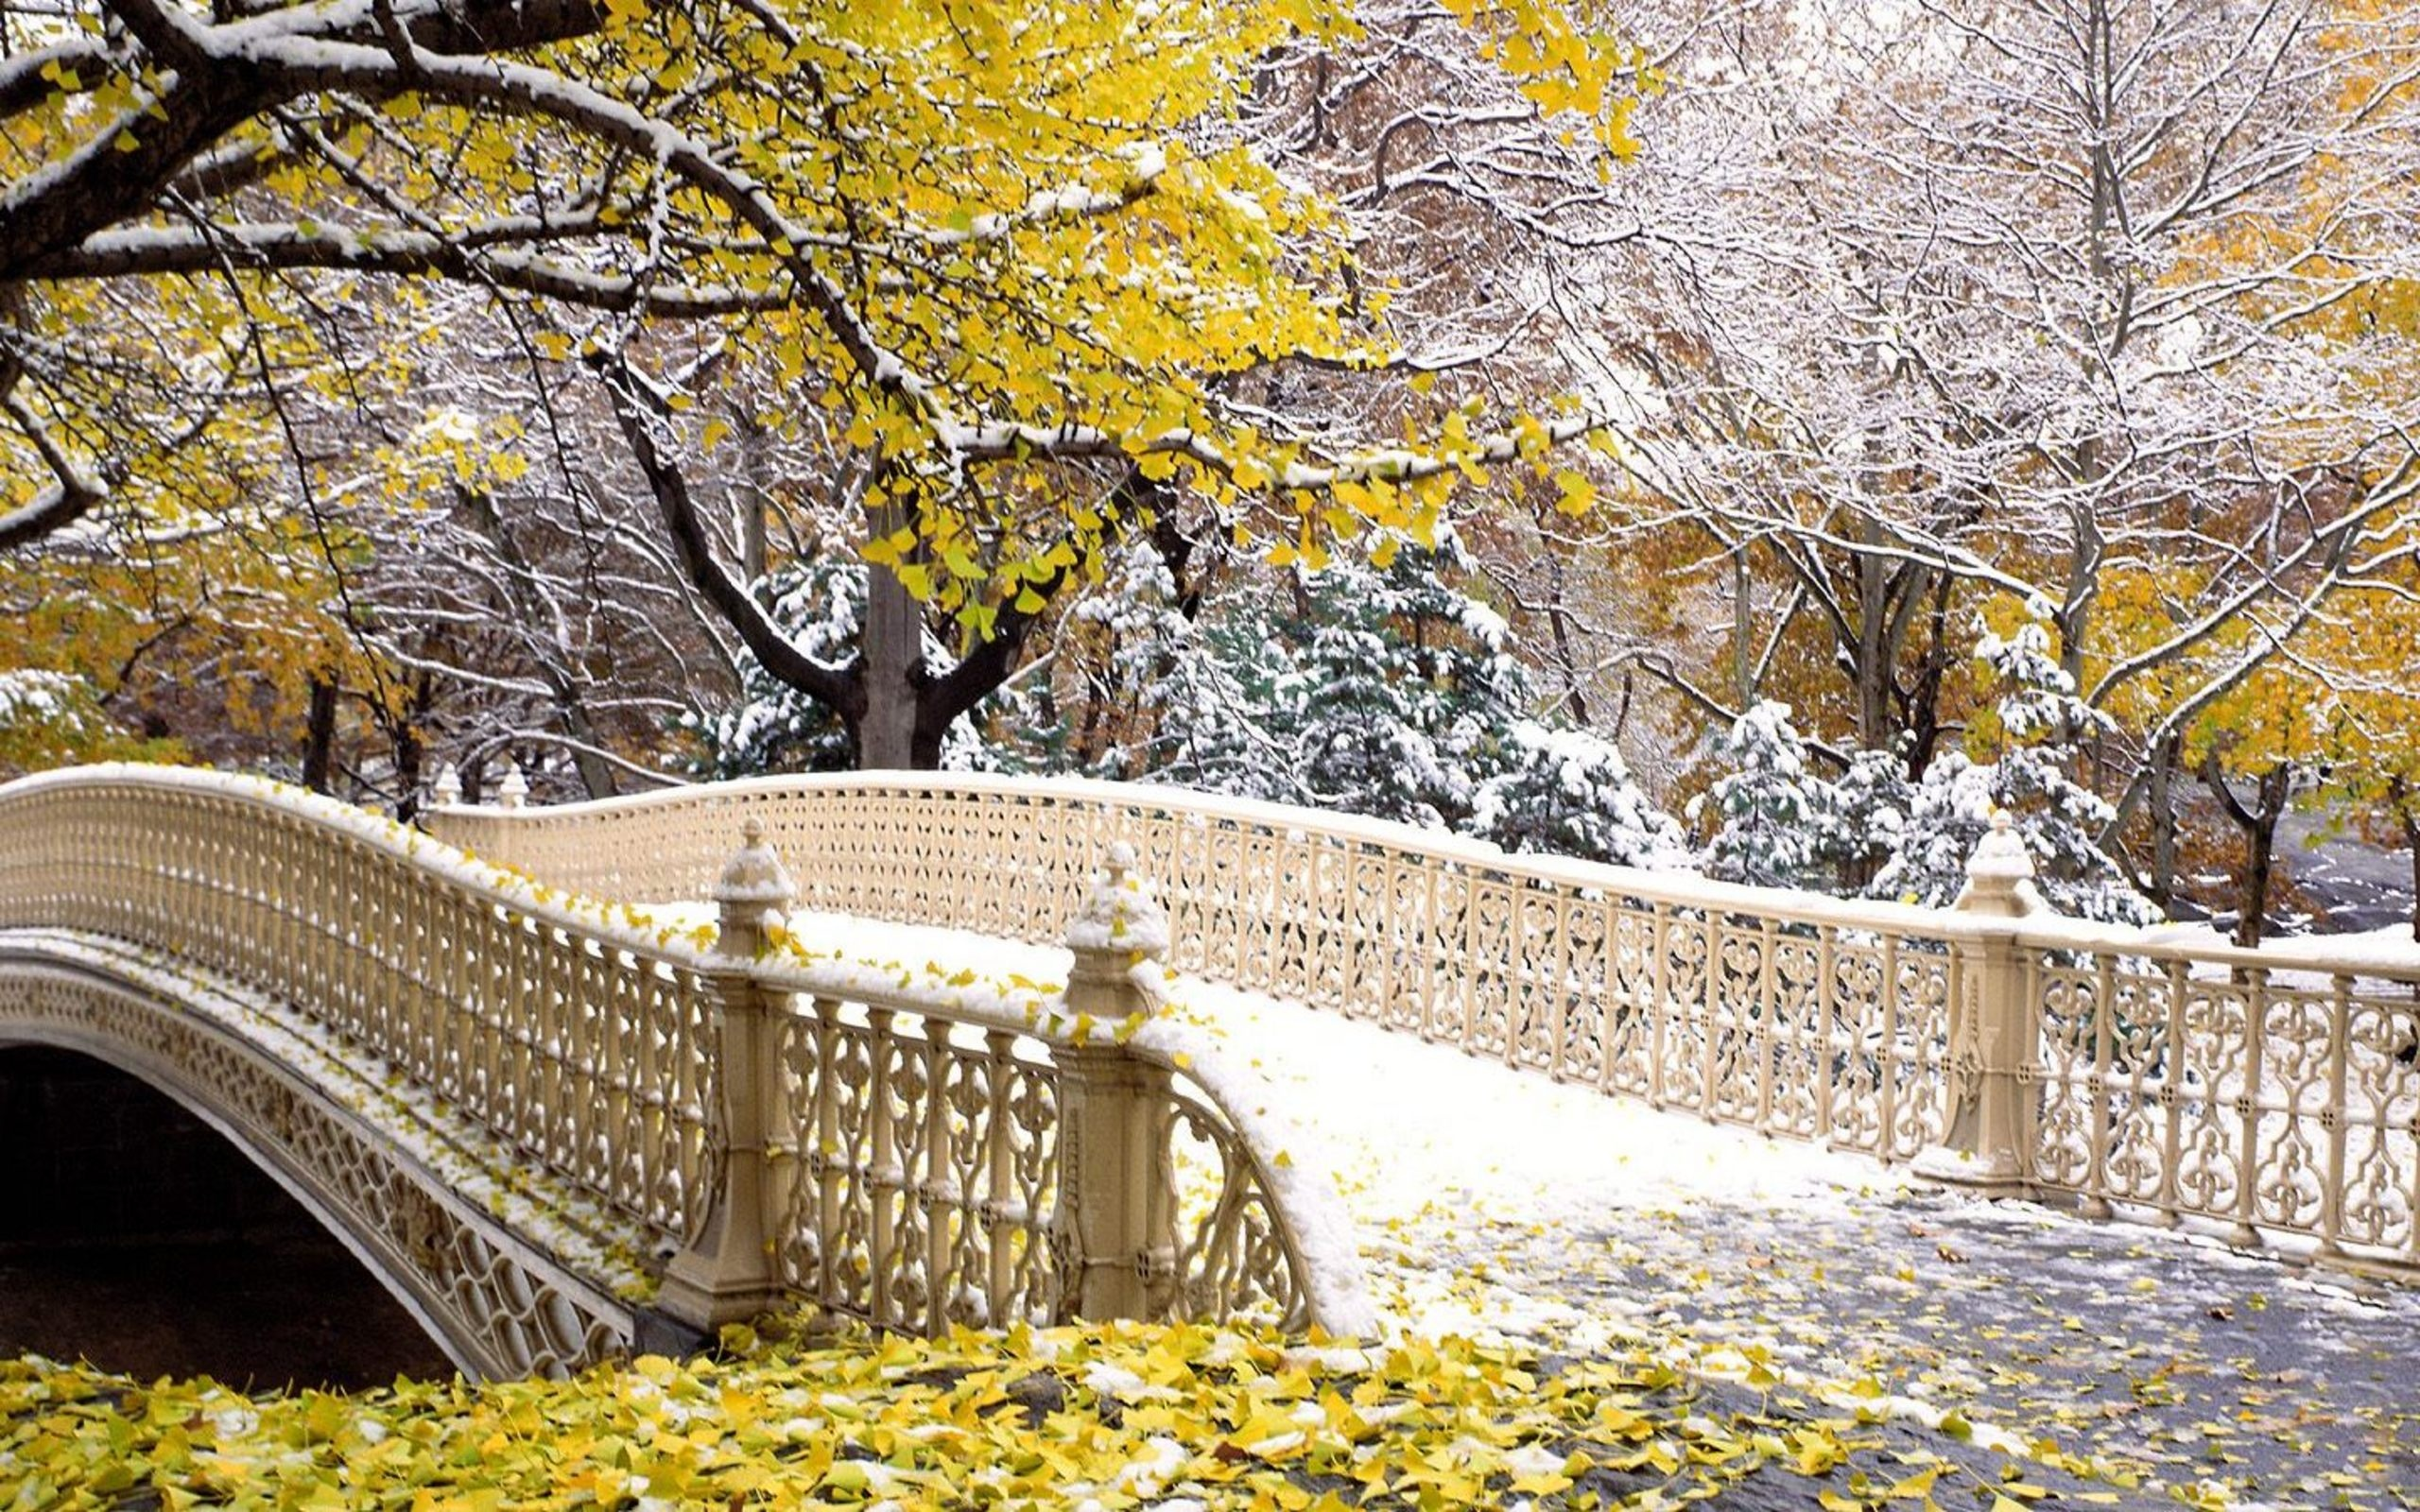 Fall Central Park New York Wallpapers in jpg format for free download